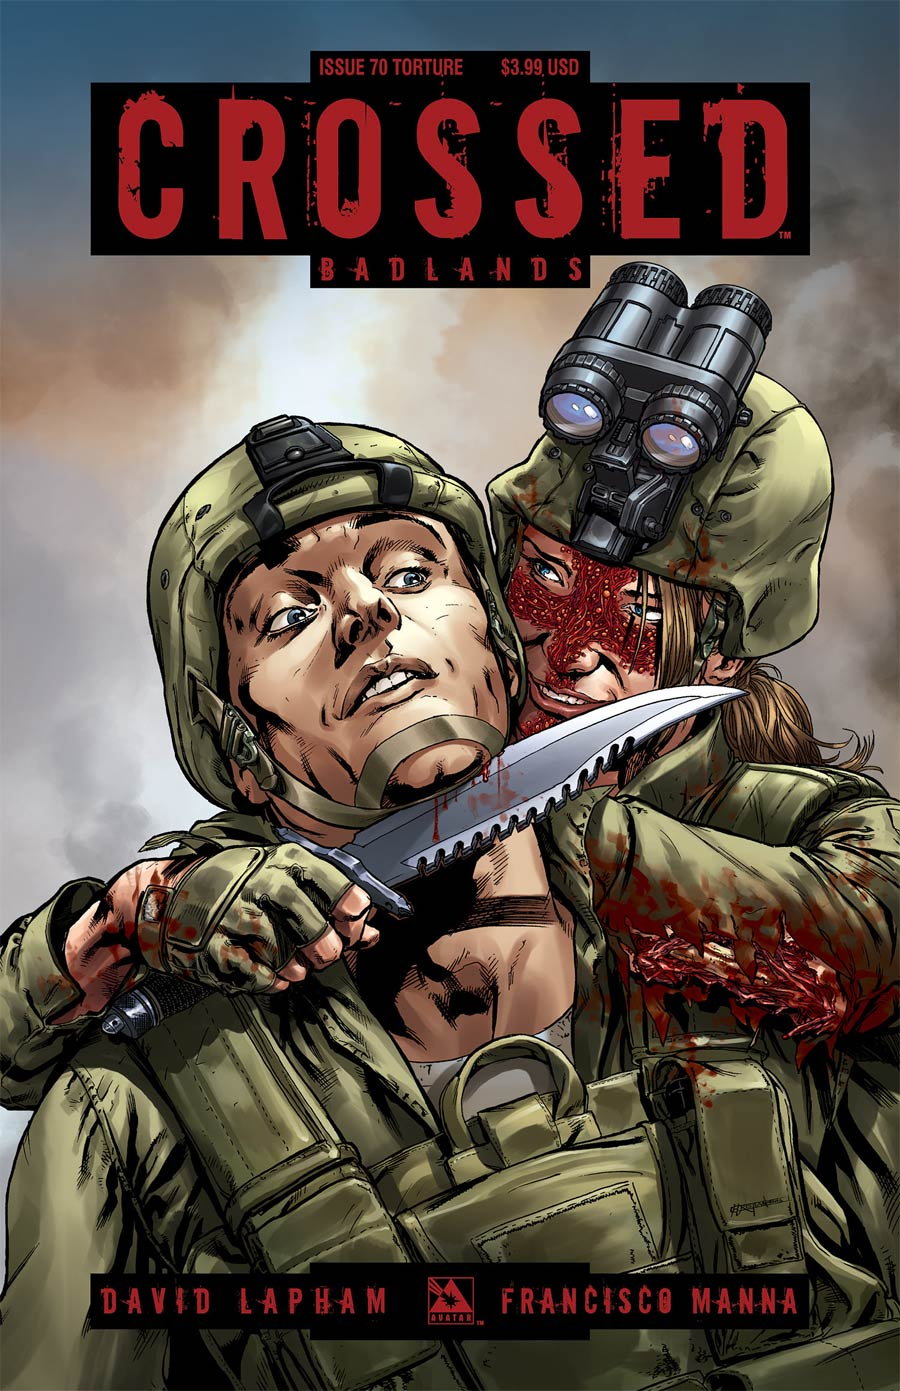 Crossed Badlands #70 Cover C Torture Cover